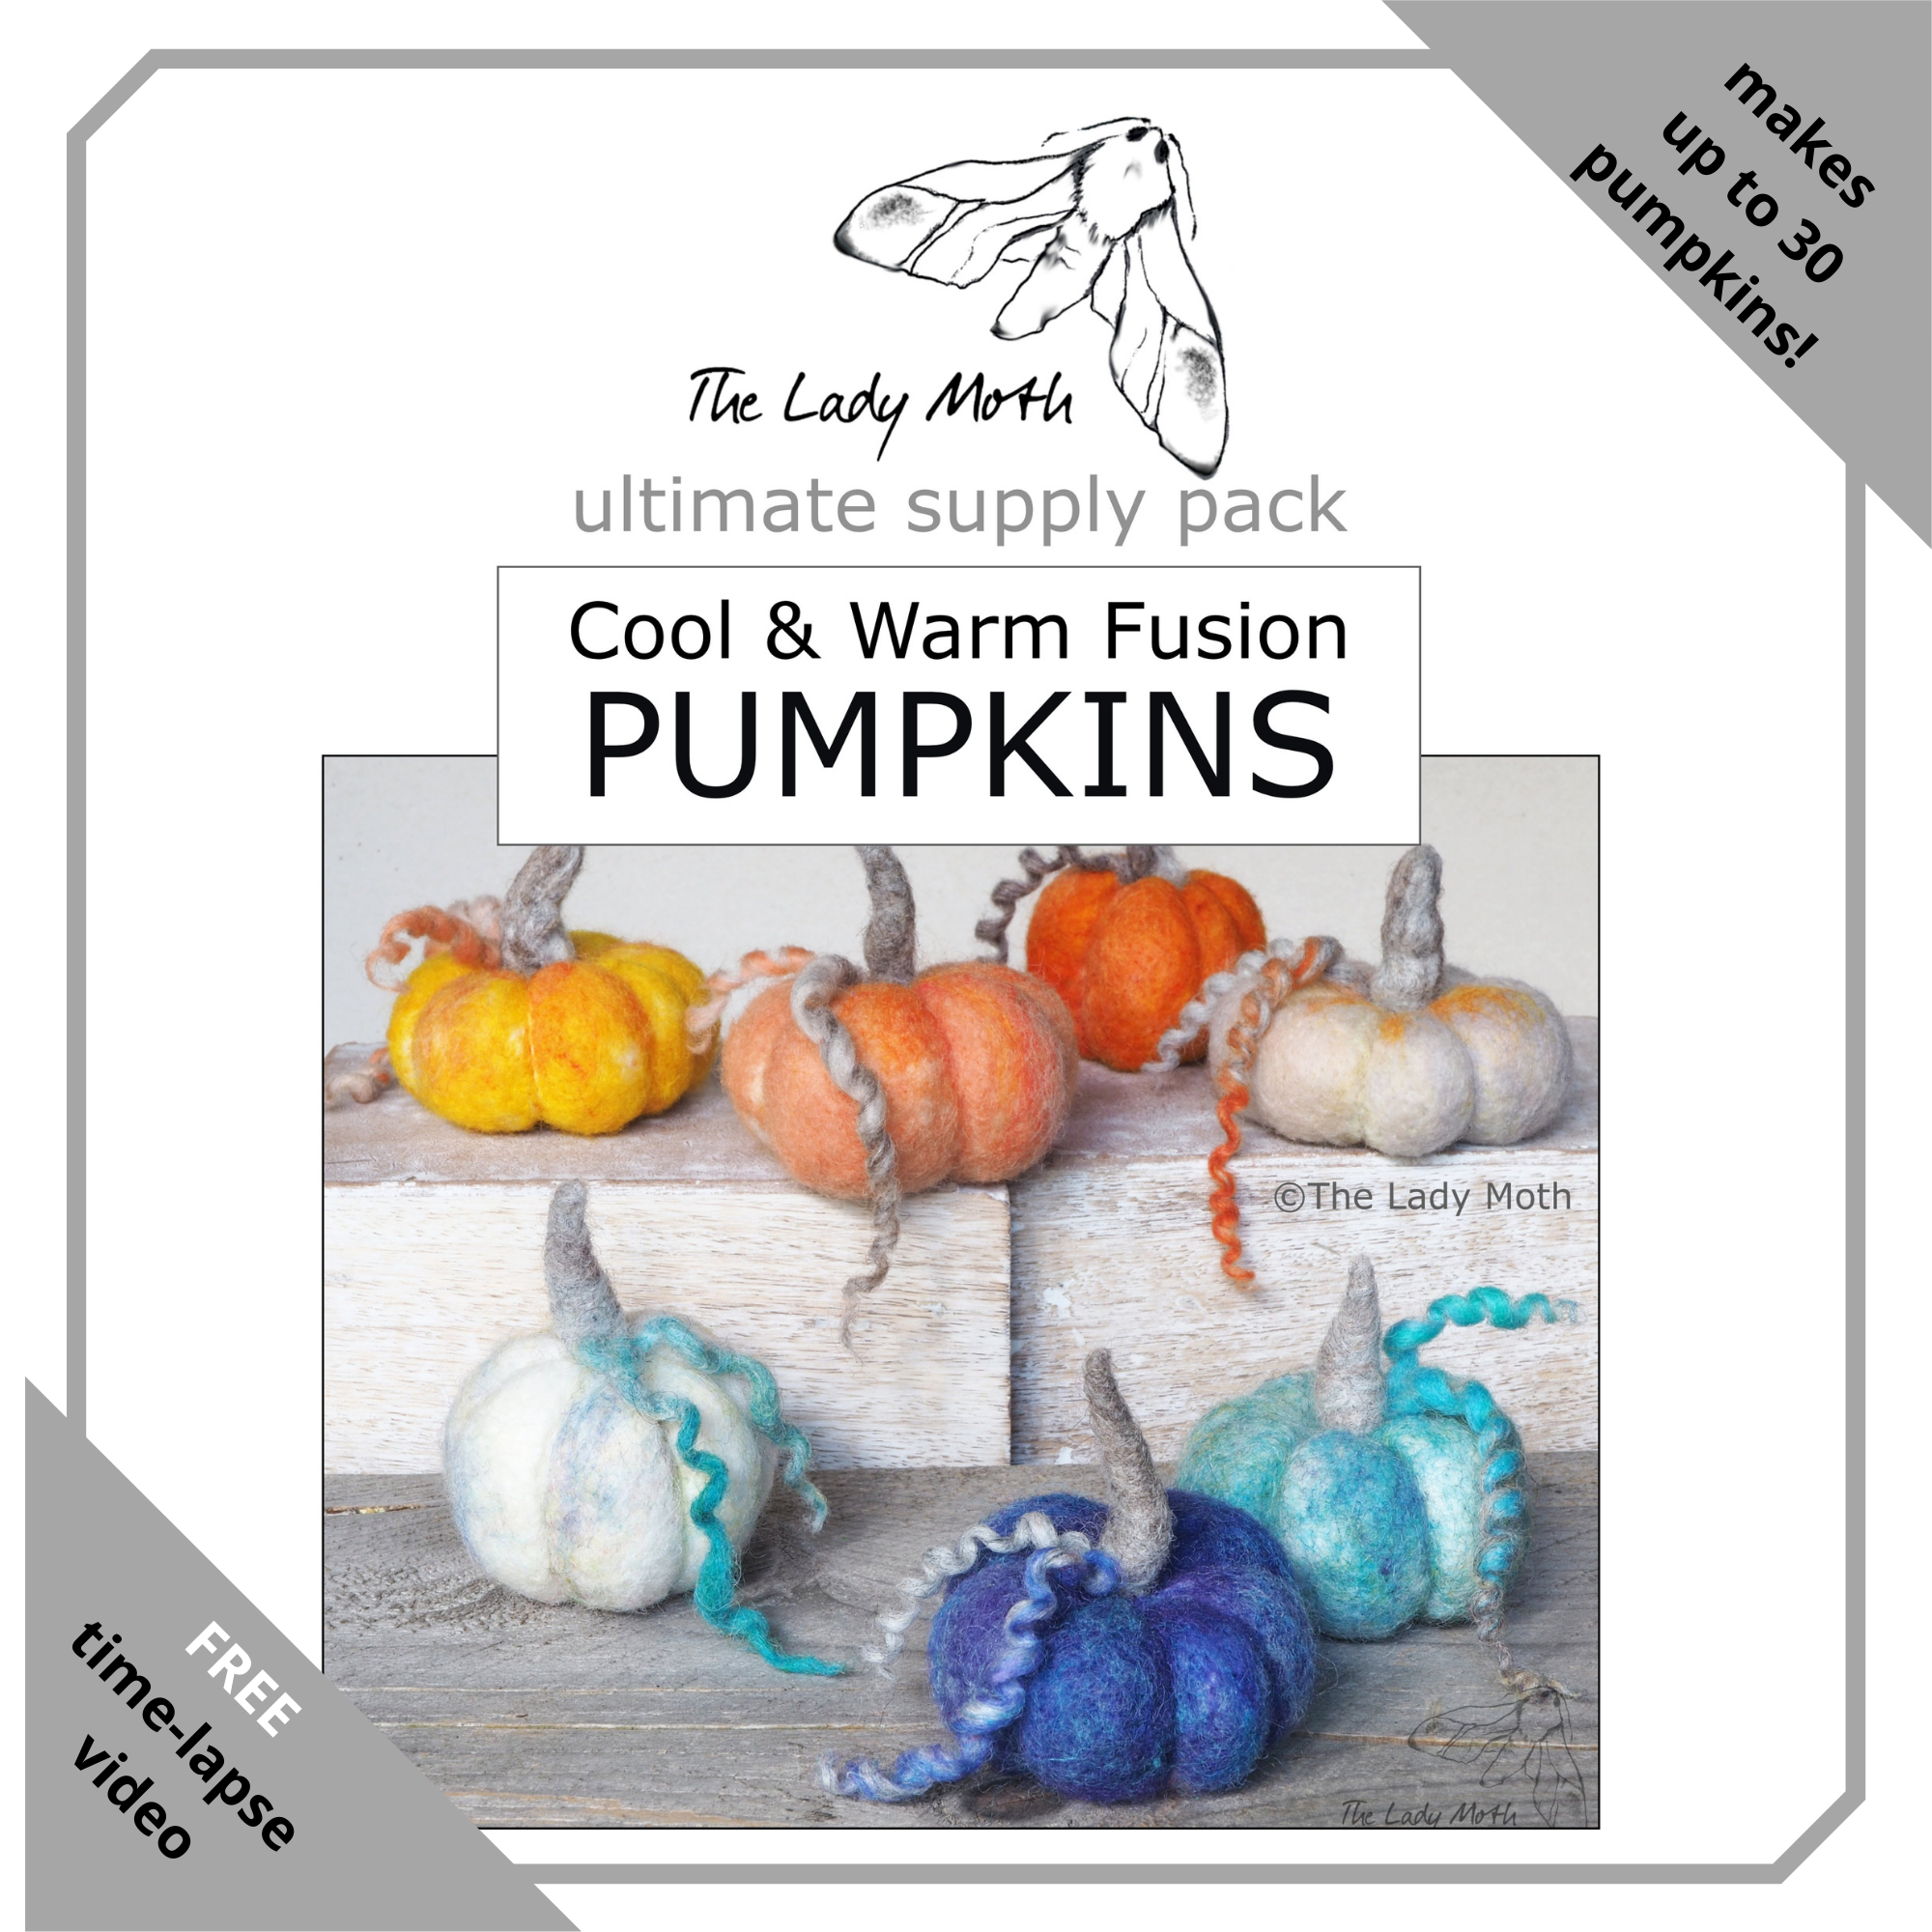 The Lady Moth COOL & WARM FUSION ultimate pumpkin supply pack